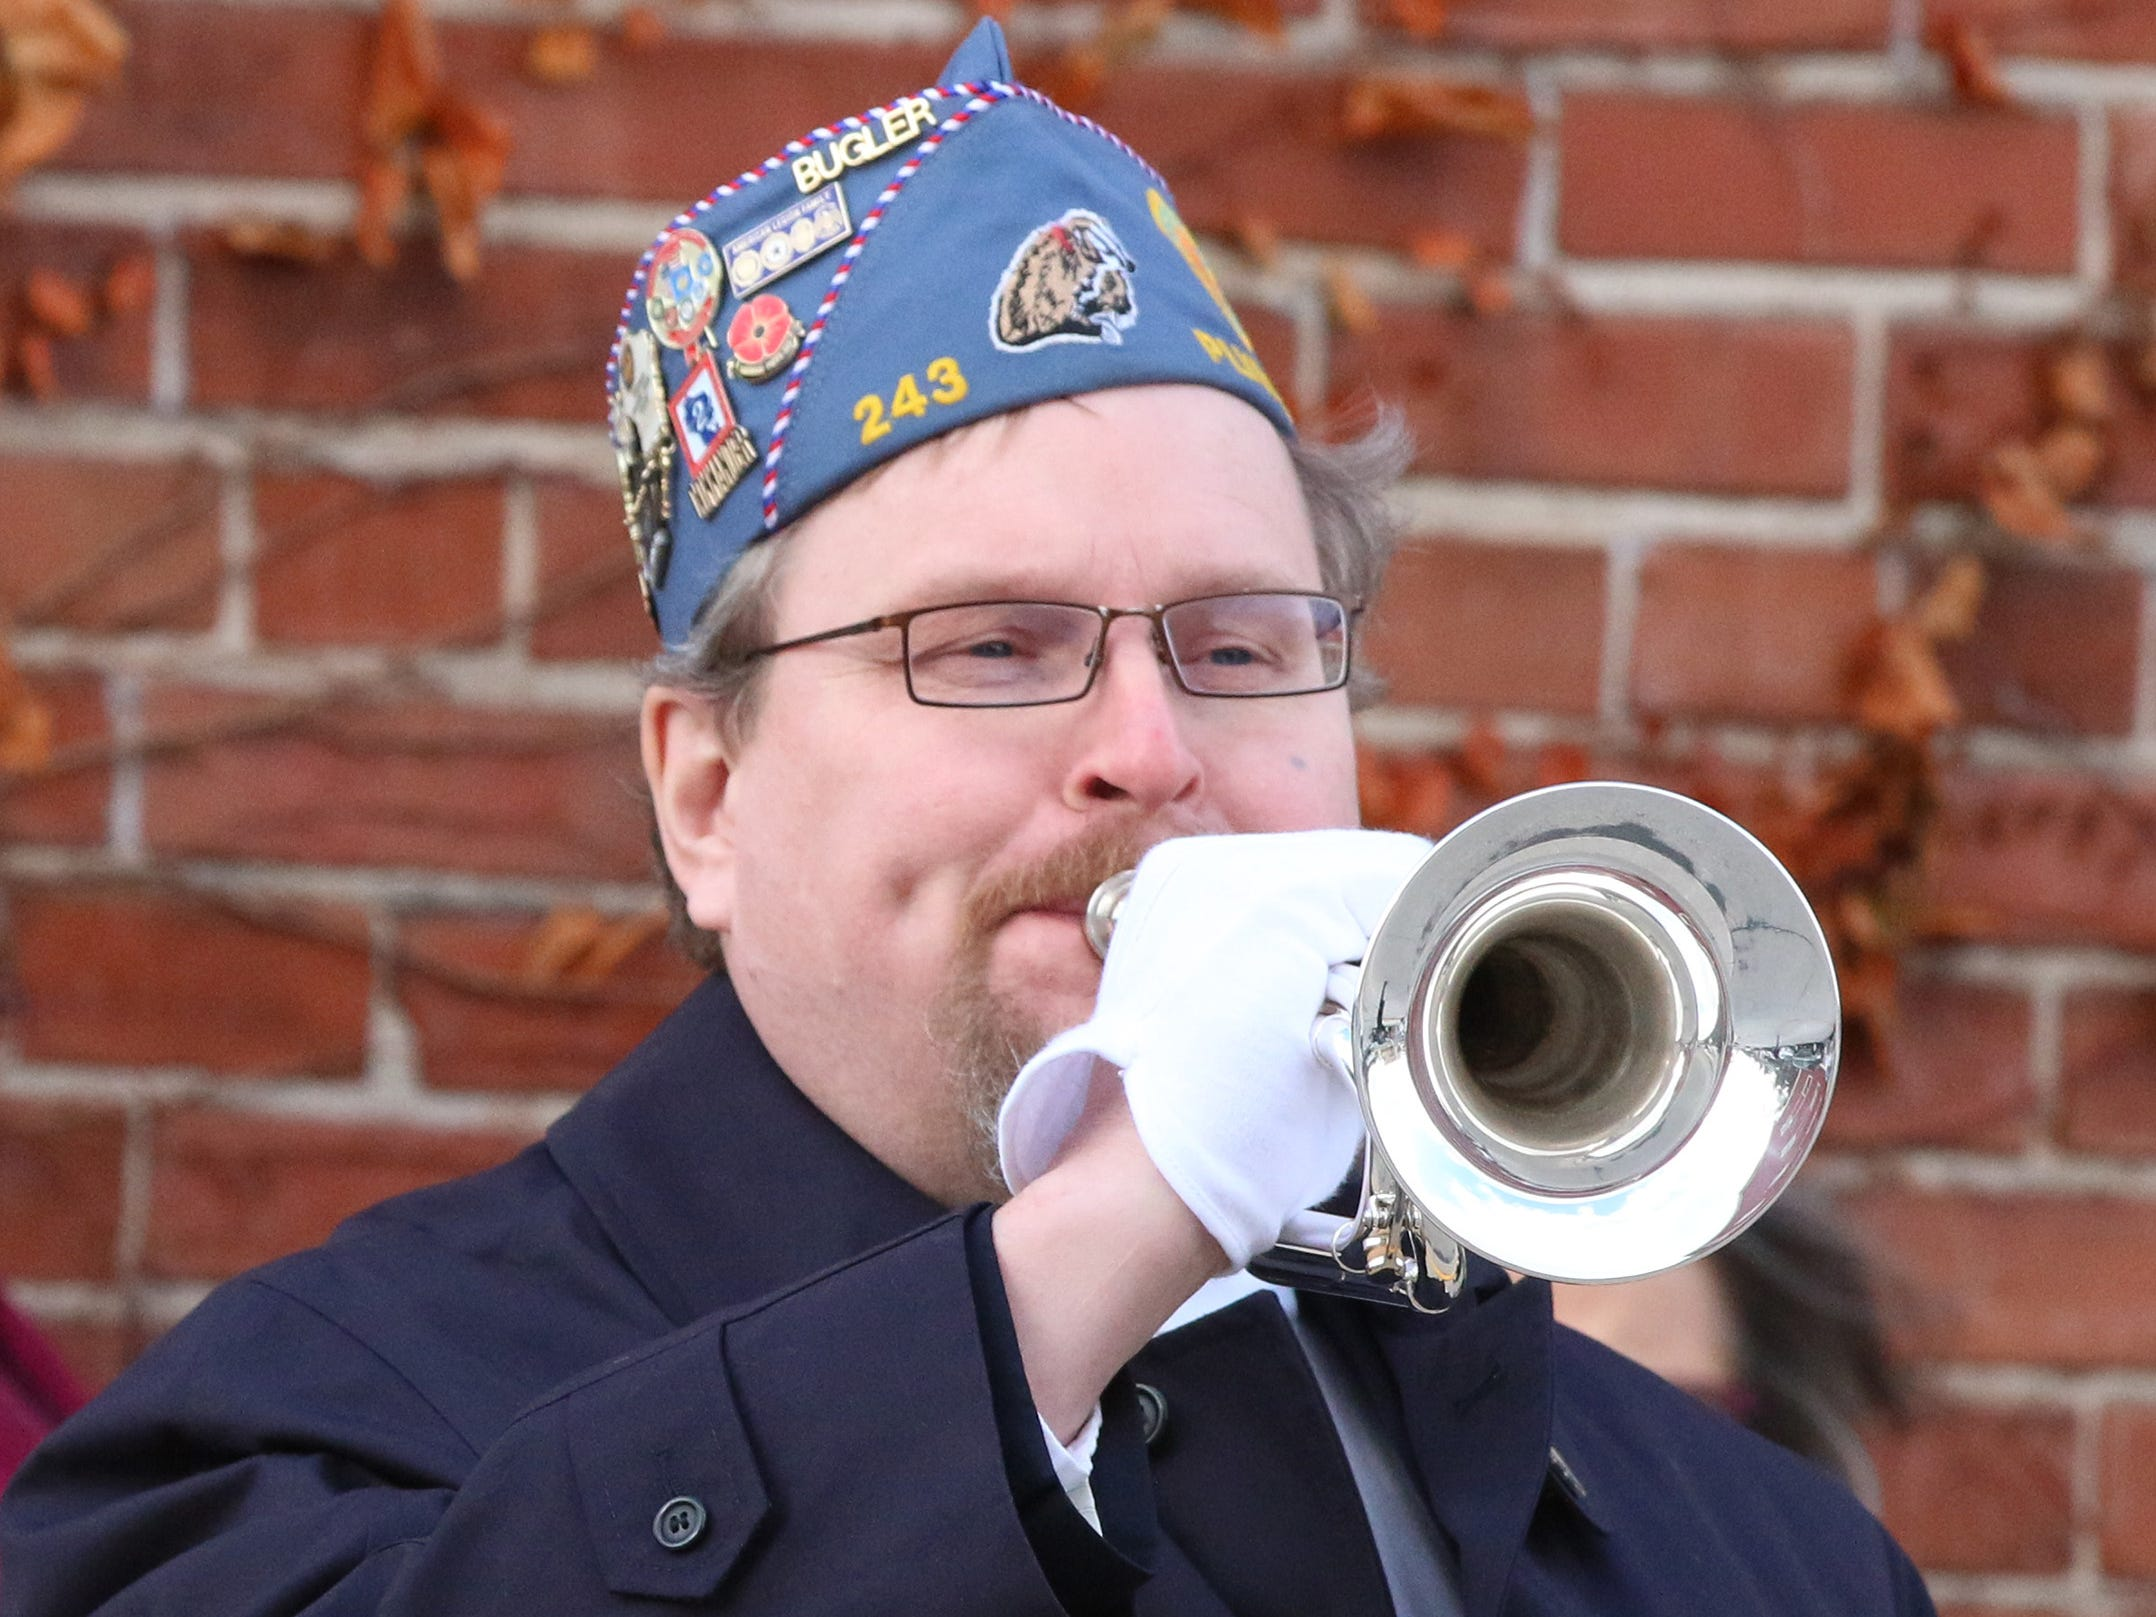 American Legion, Ladwig-Zinkgraf Post 243's Michael Kalsbeek performs Taps during the Pearl Harbor program, Friday, December 7, 2018, in Plymouth, Wis.